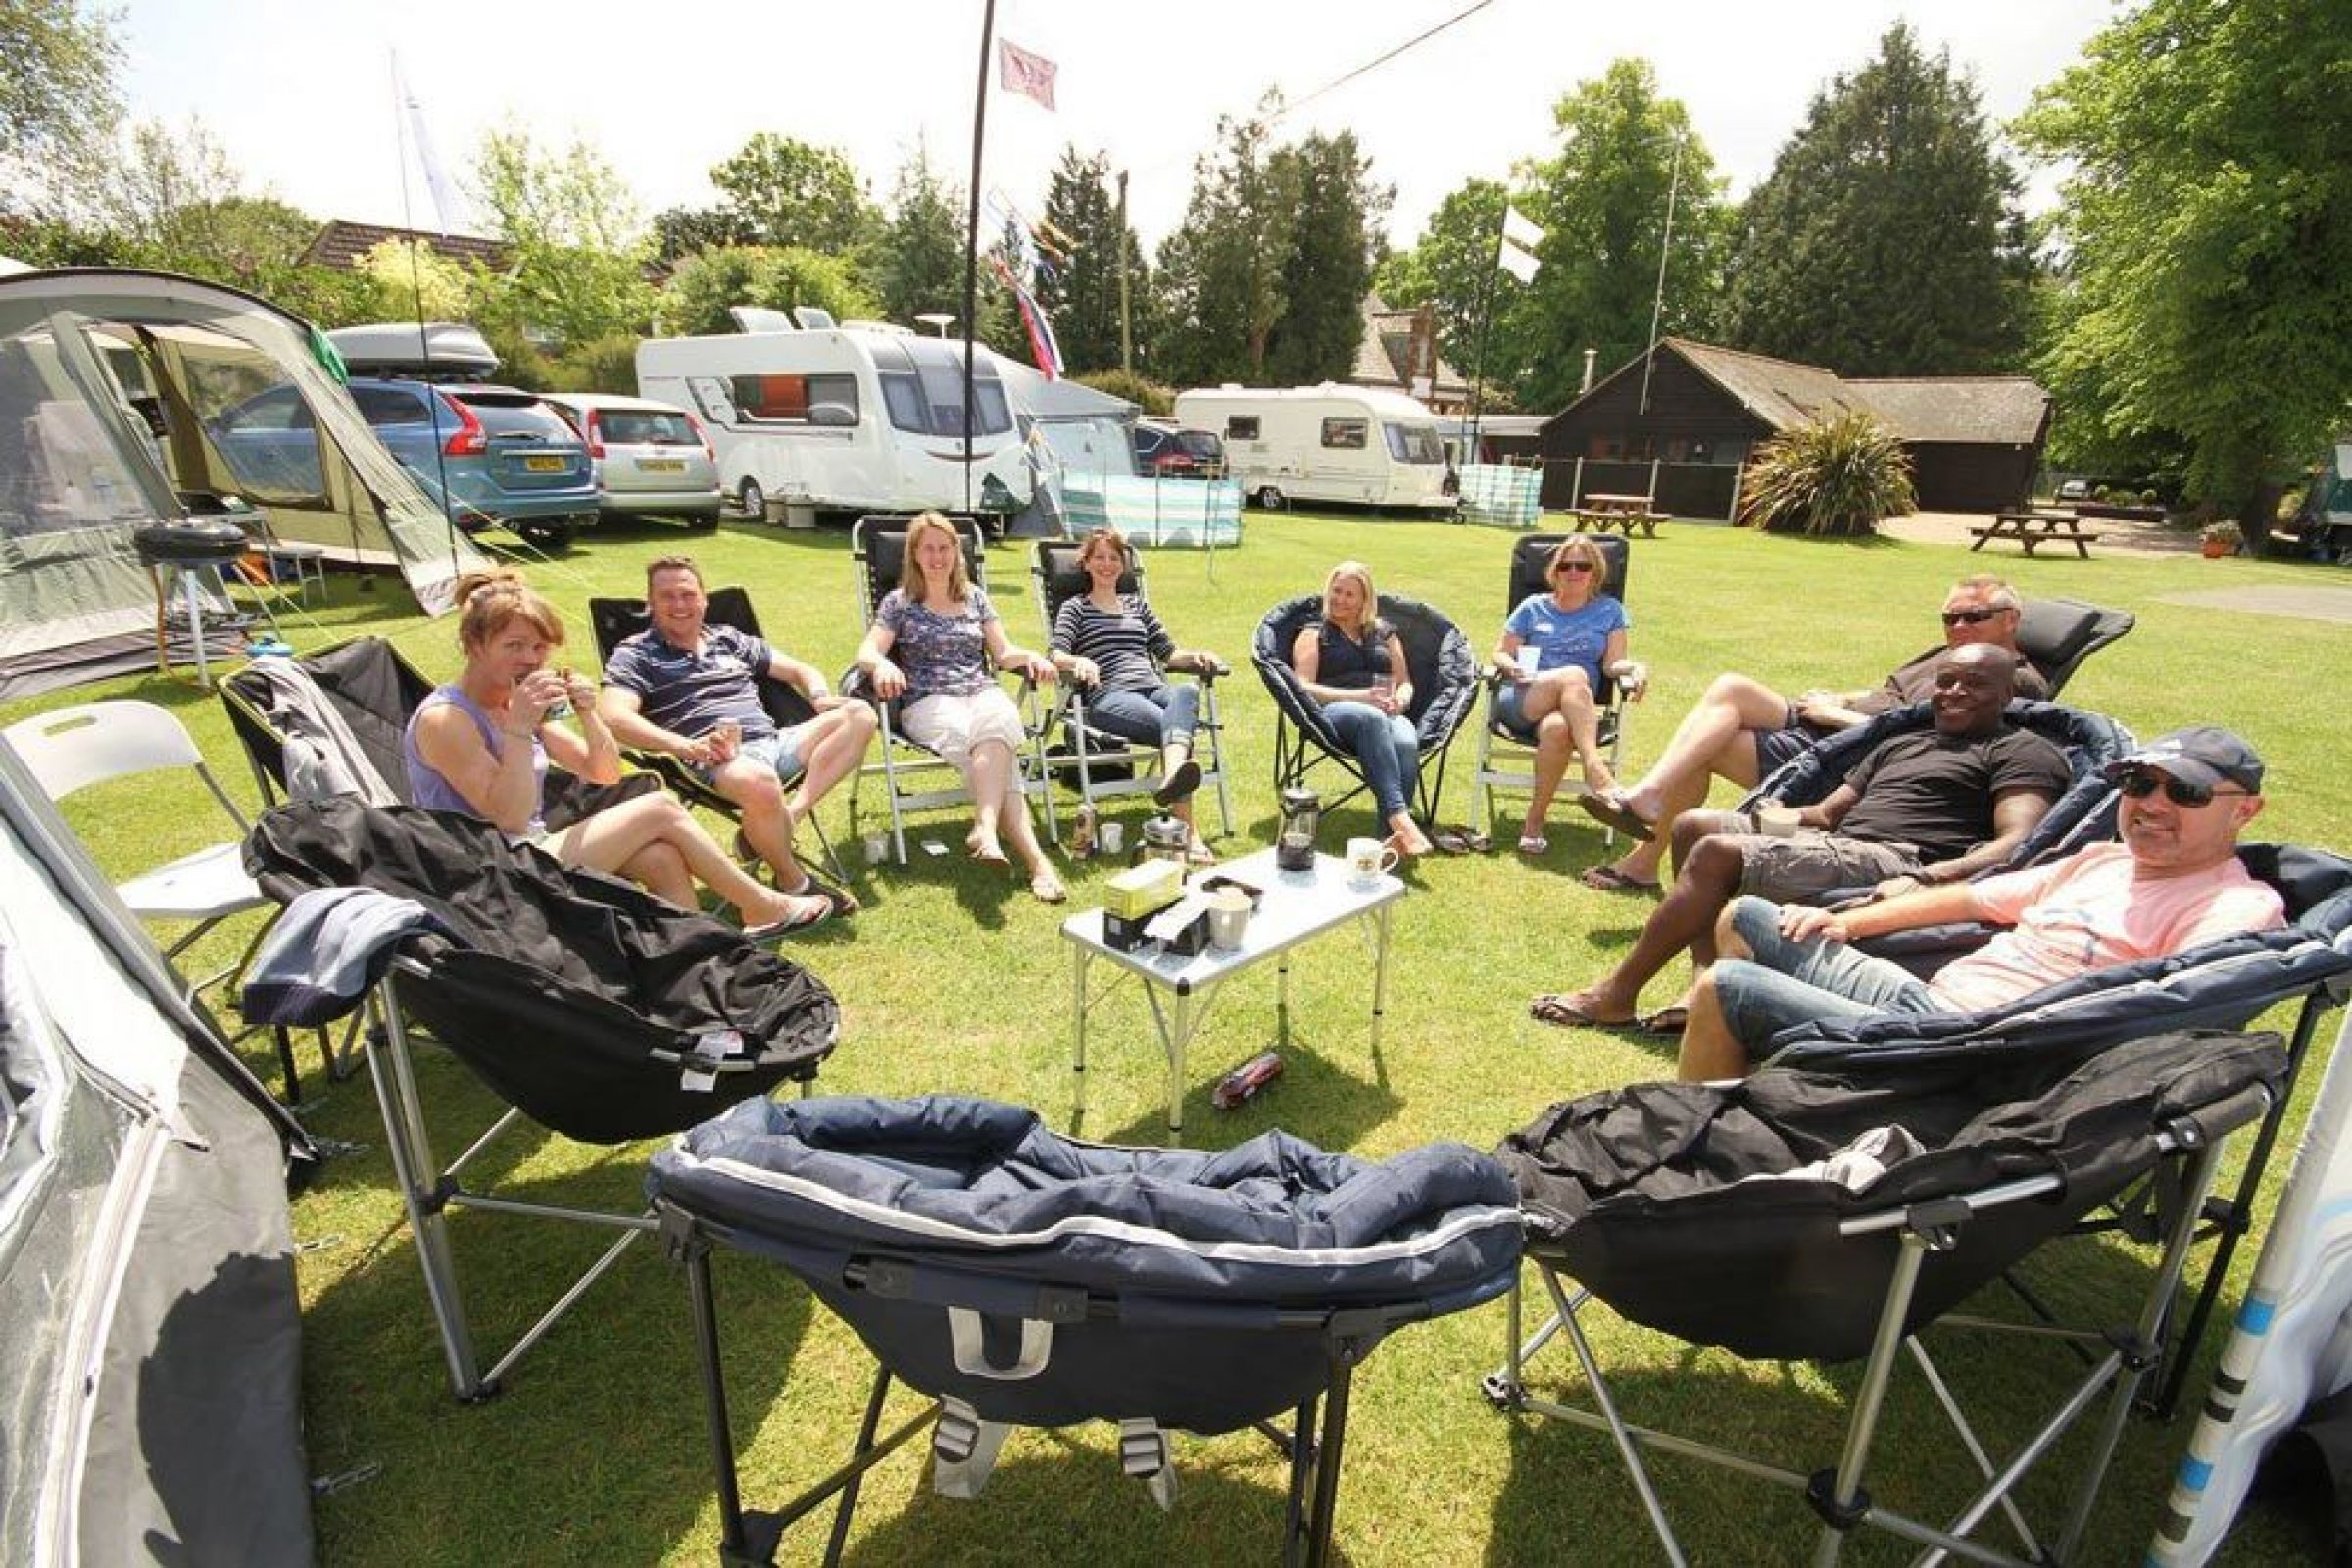 Rally campsite in Dorset. South Lytchett Manor is popular for hosting car rallies.